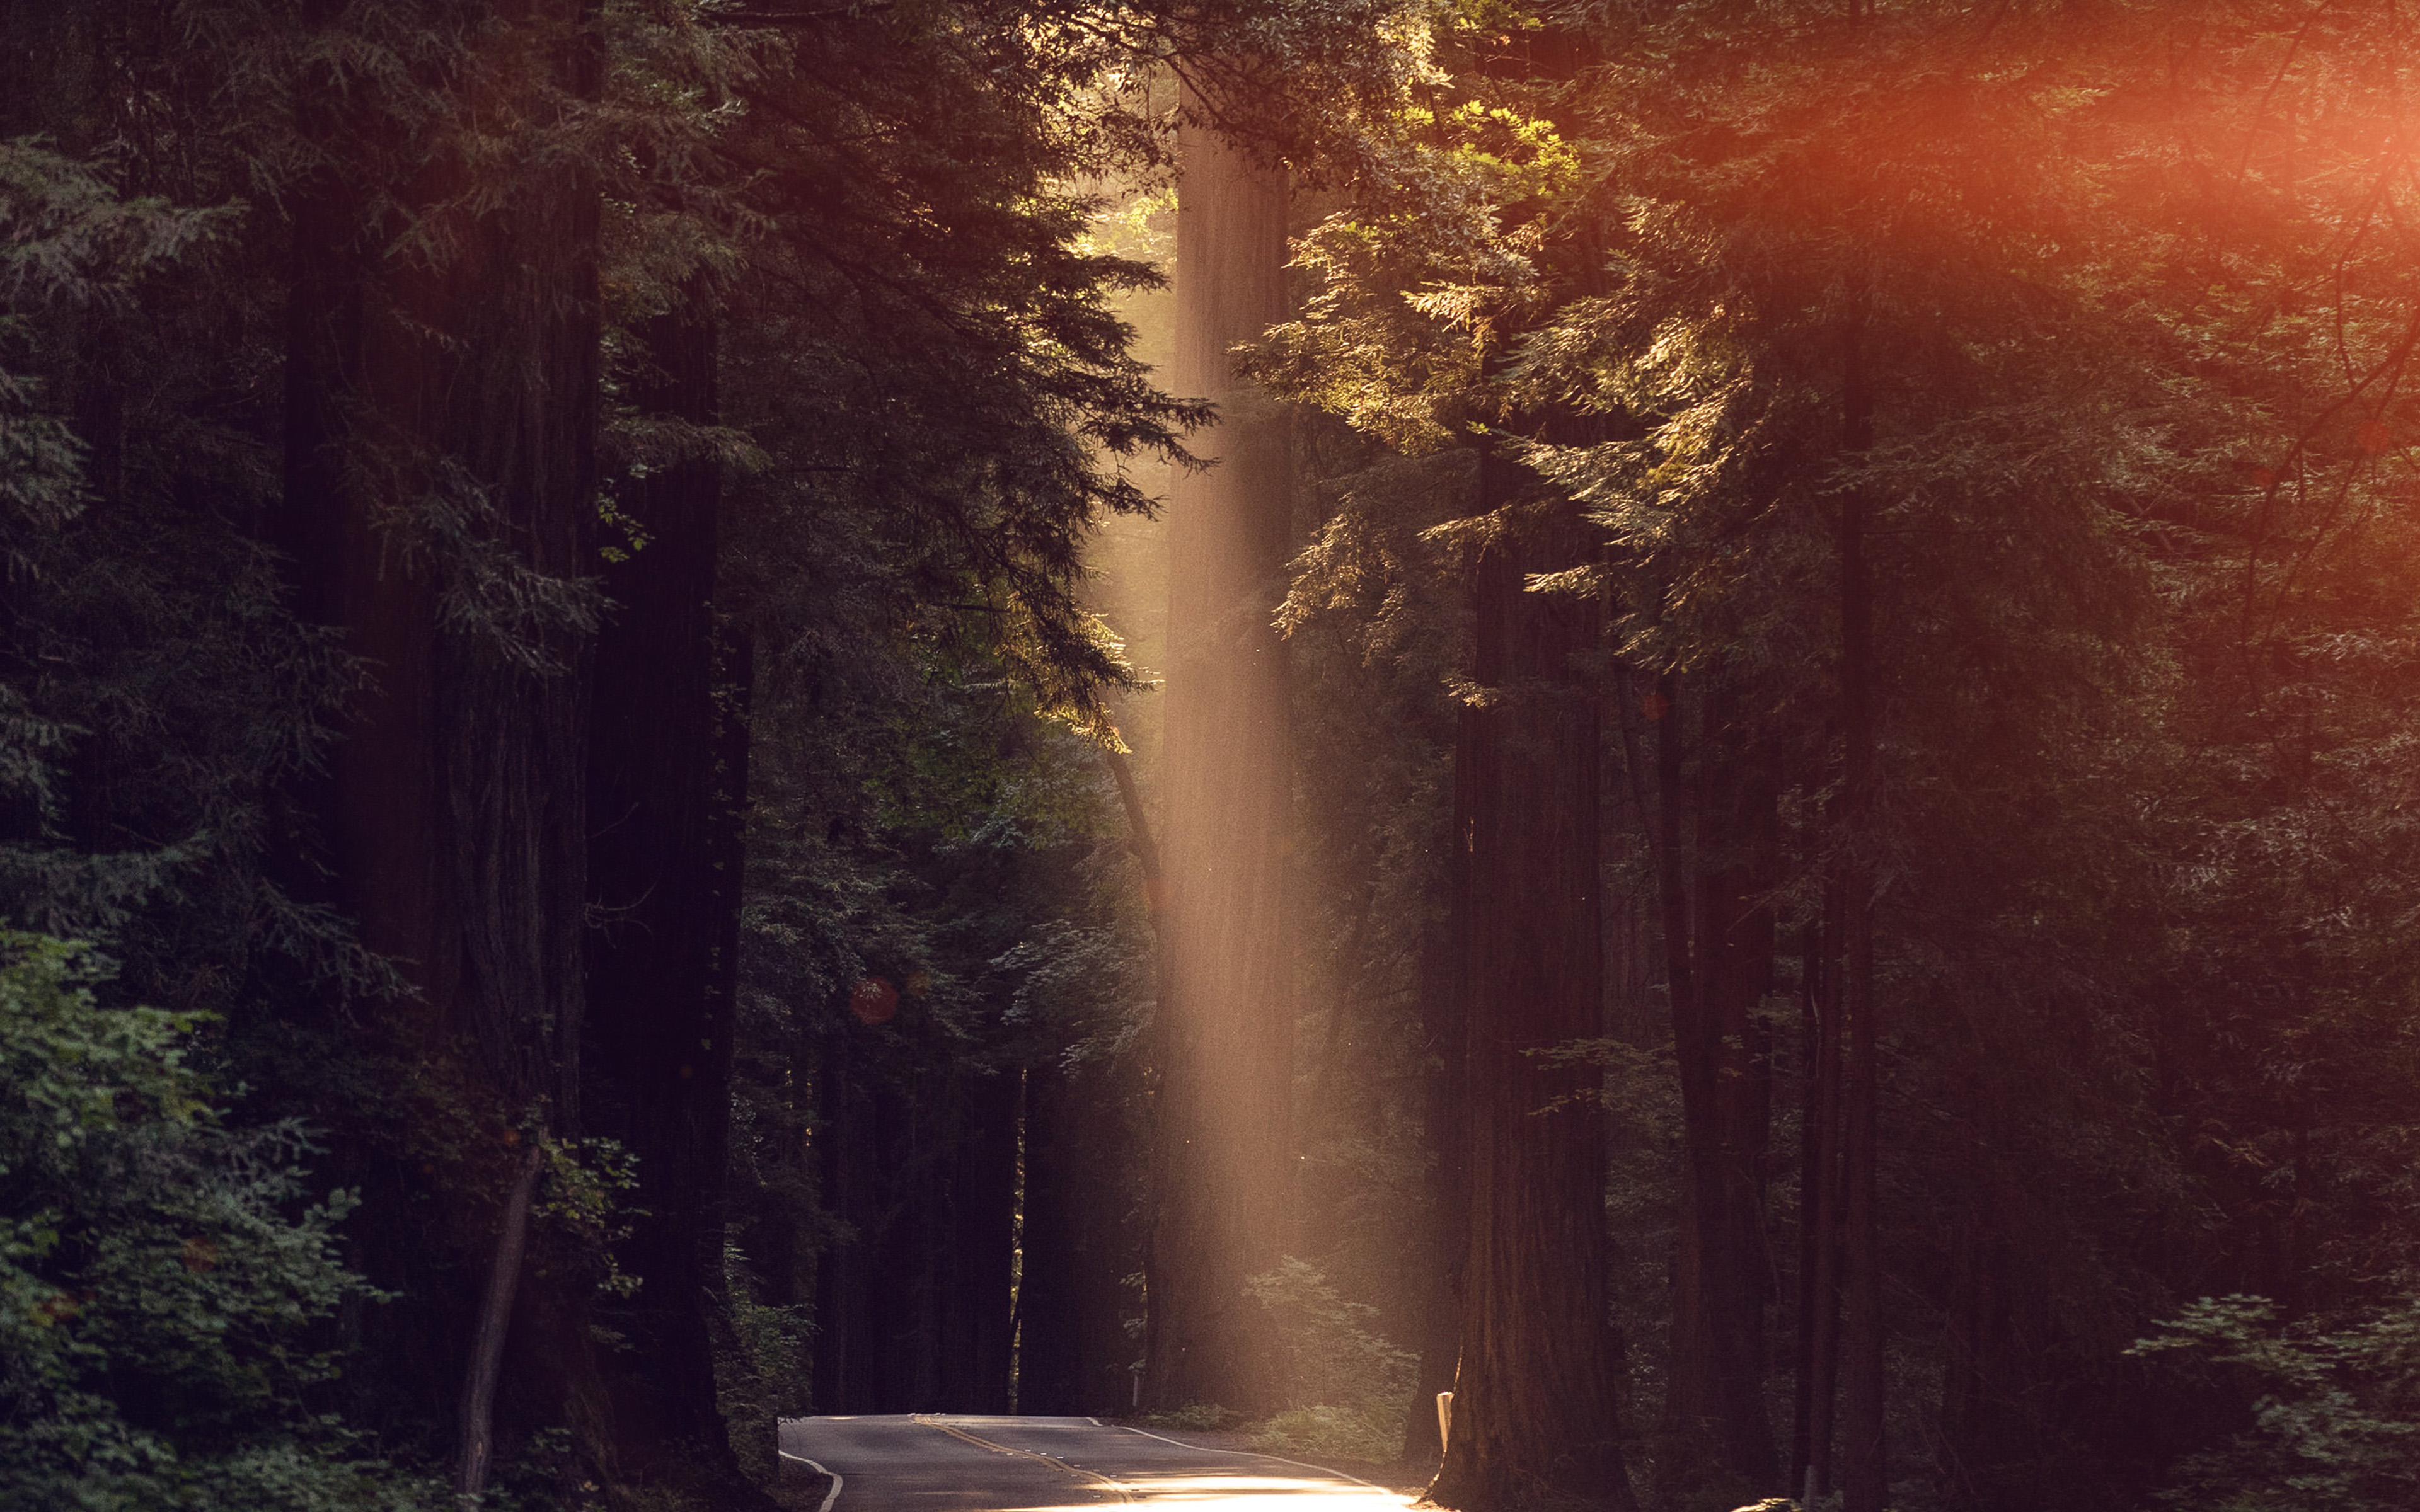 Nh16 Light Road Wood Forest Way Nature Flare Wallpaper